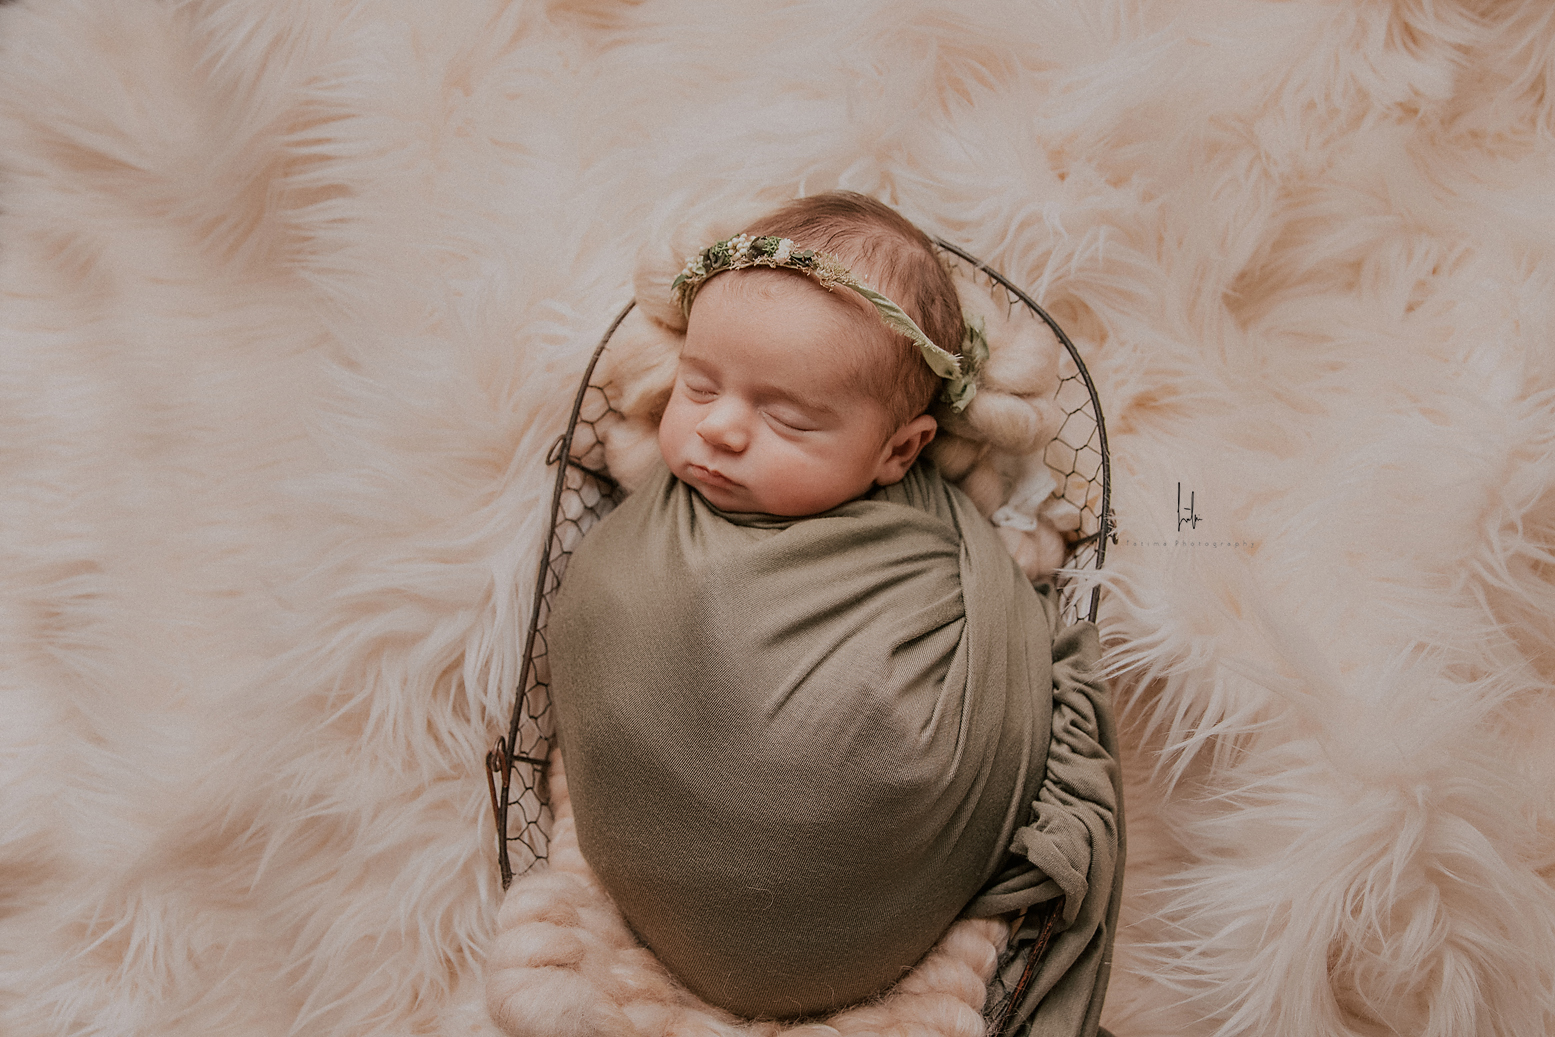 Newborn Photography Essex, Baby, Photography, photoshoot, family, photo, newborn, new baby, baby girl